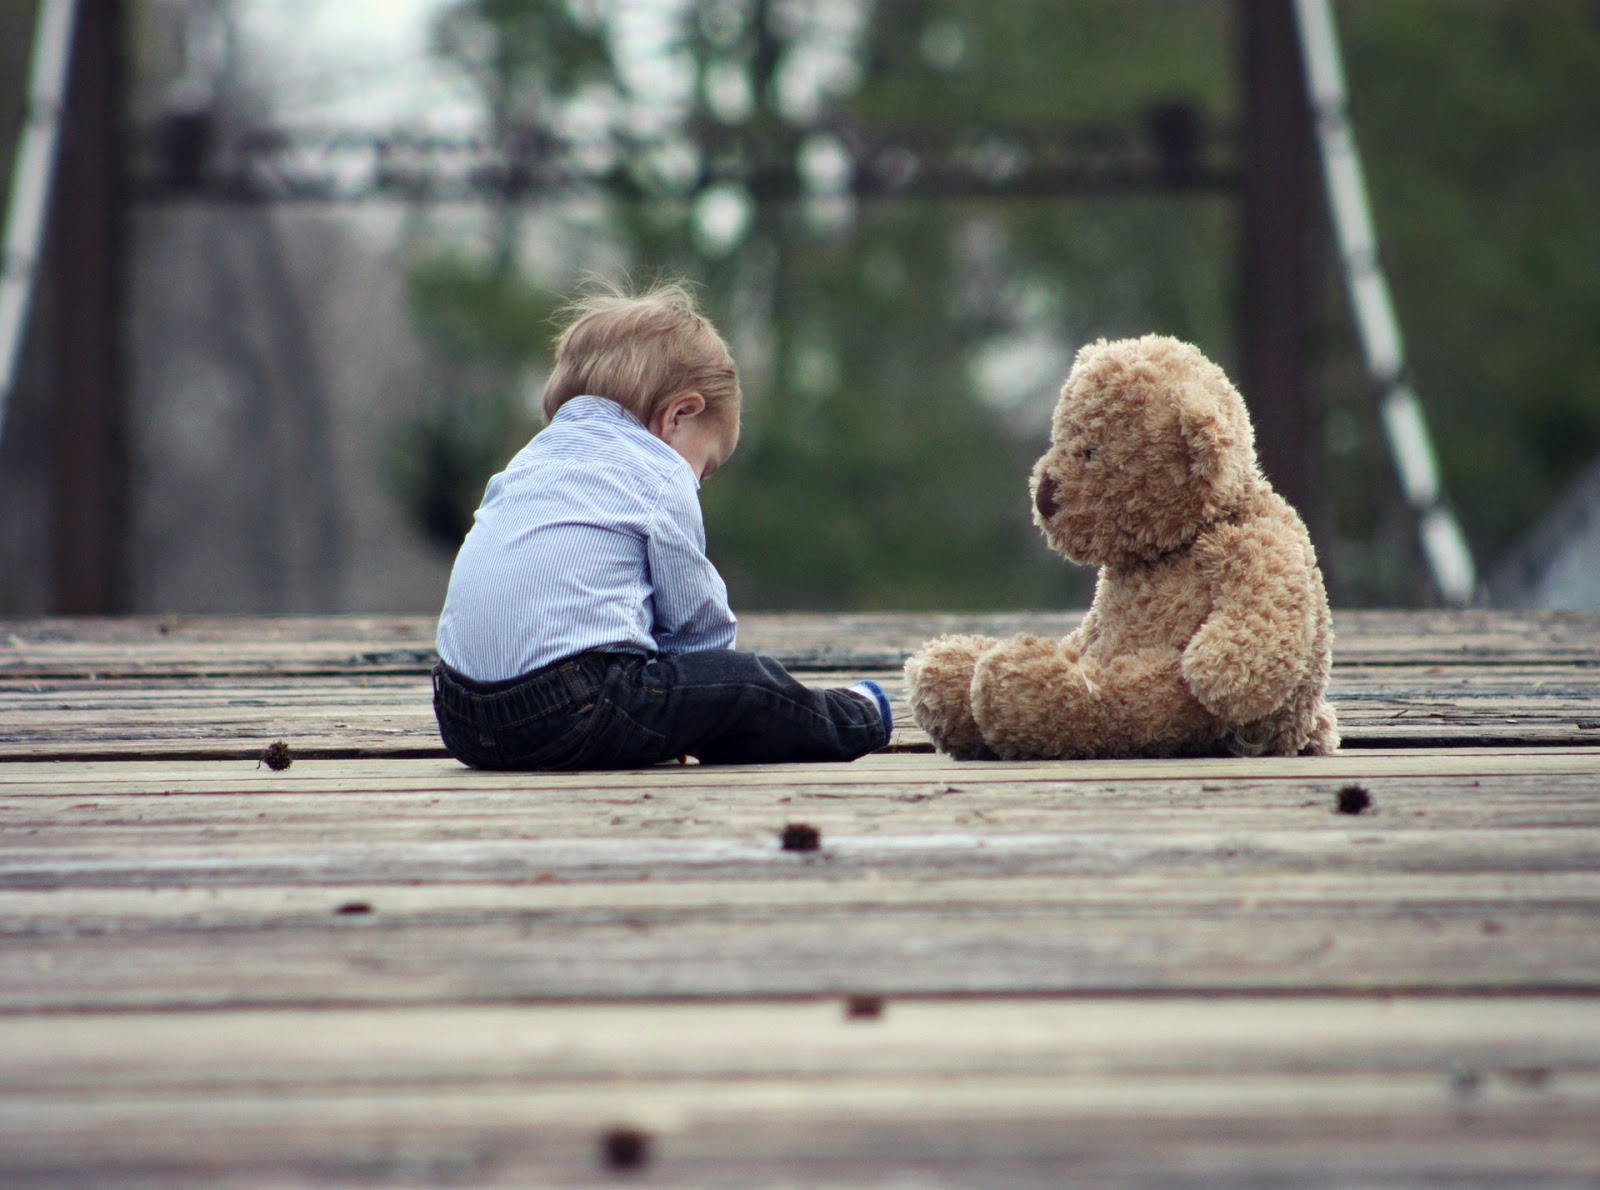 sad child sitting next to teddy bear